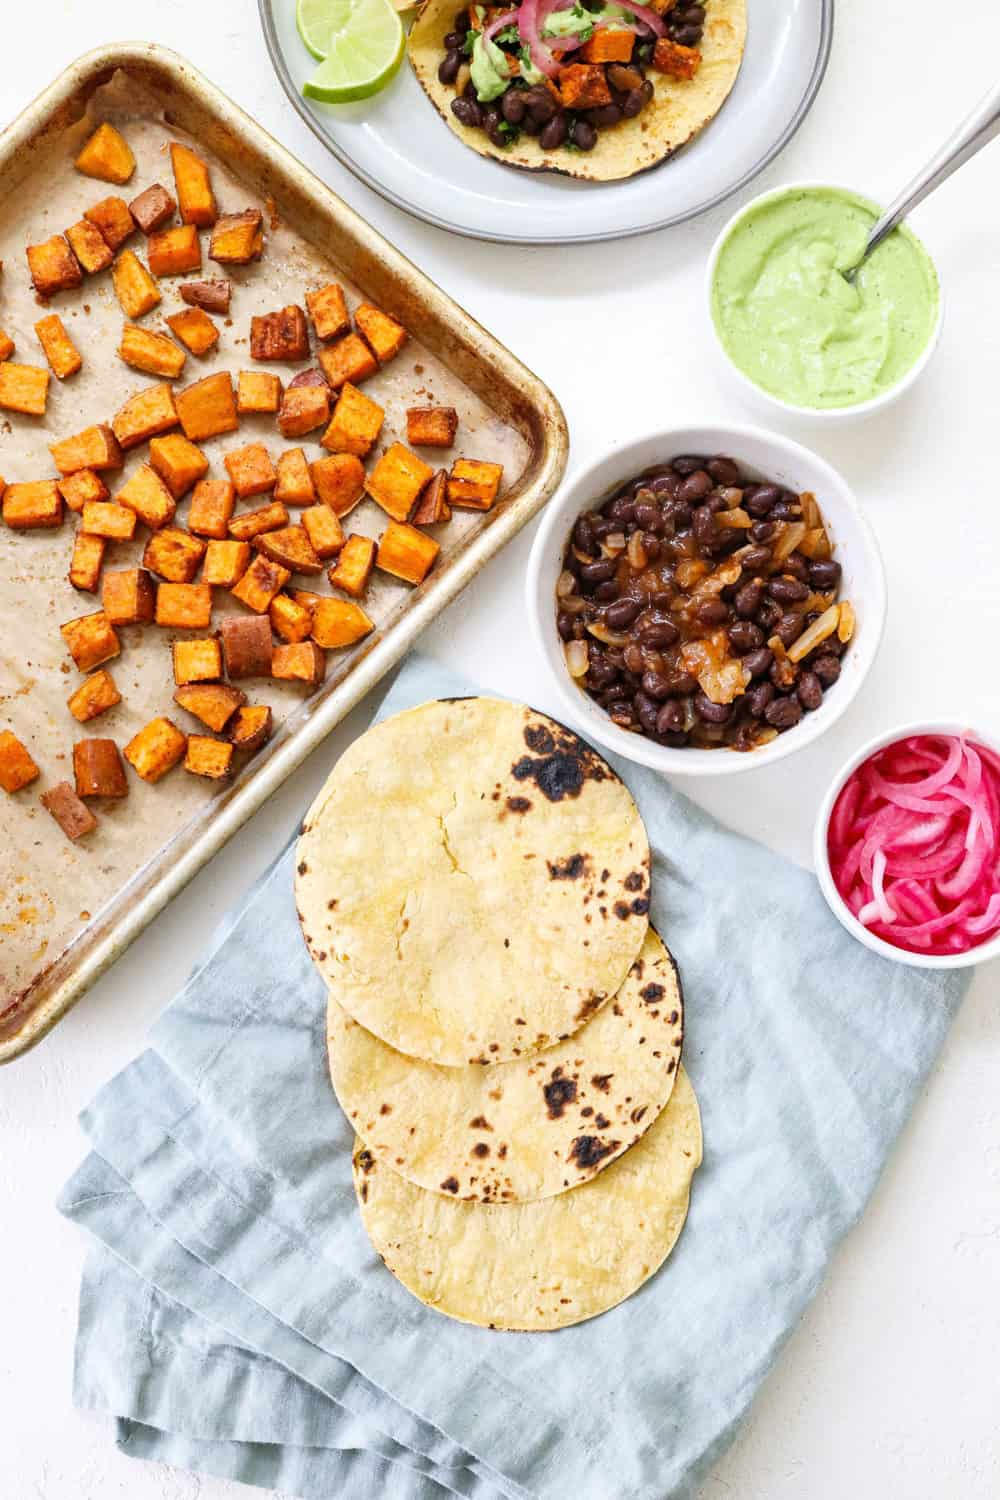 sweet potatoes, black beans, avocado sauce and tortillas on a white board